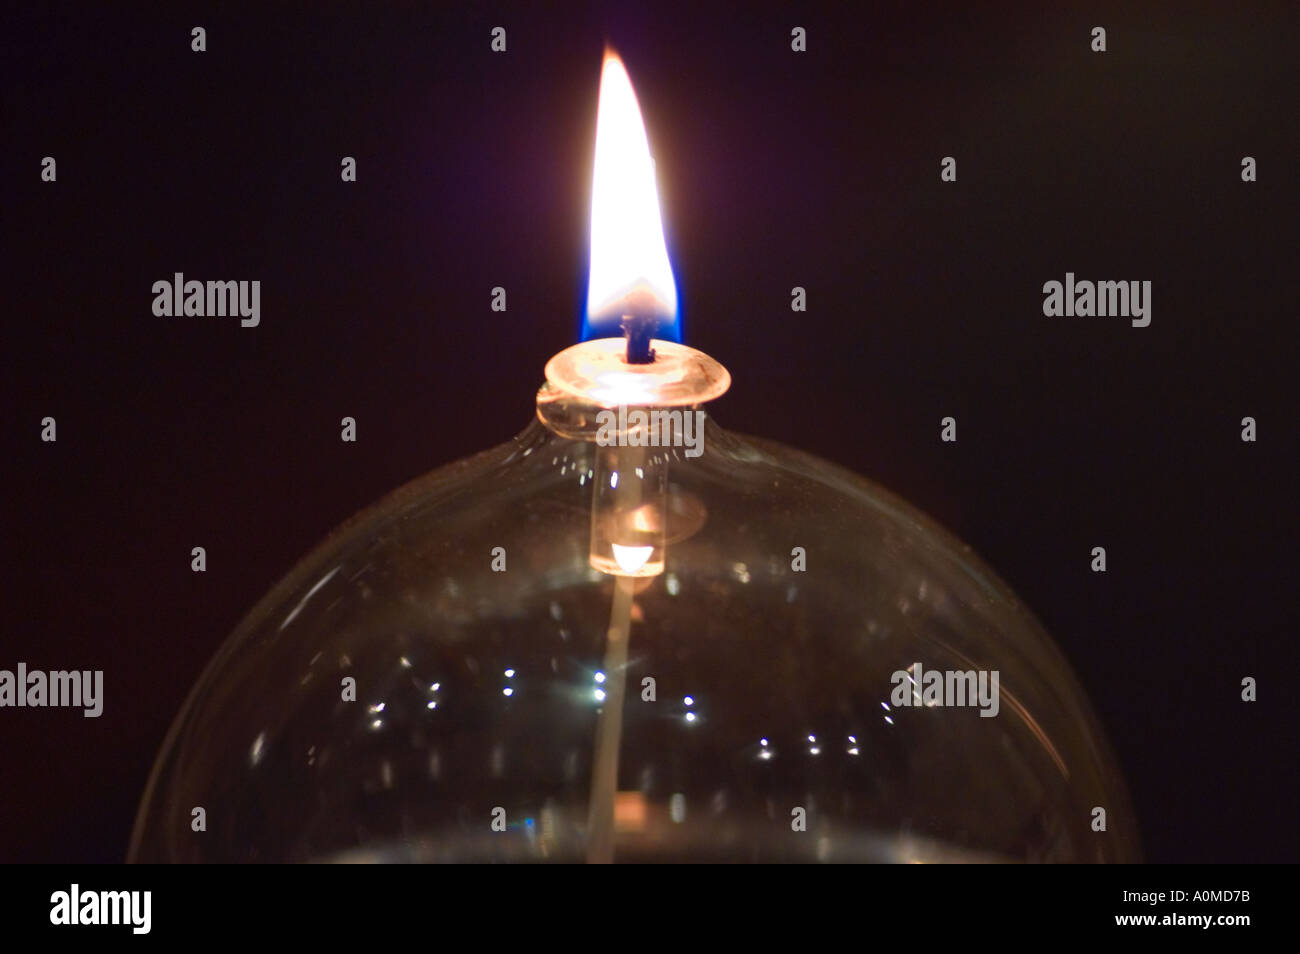 A flame burning on a glass globe oil lamp - Stock Image